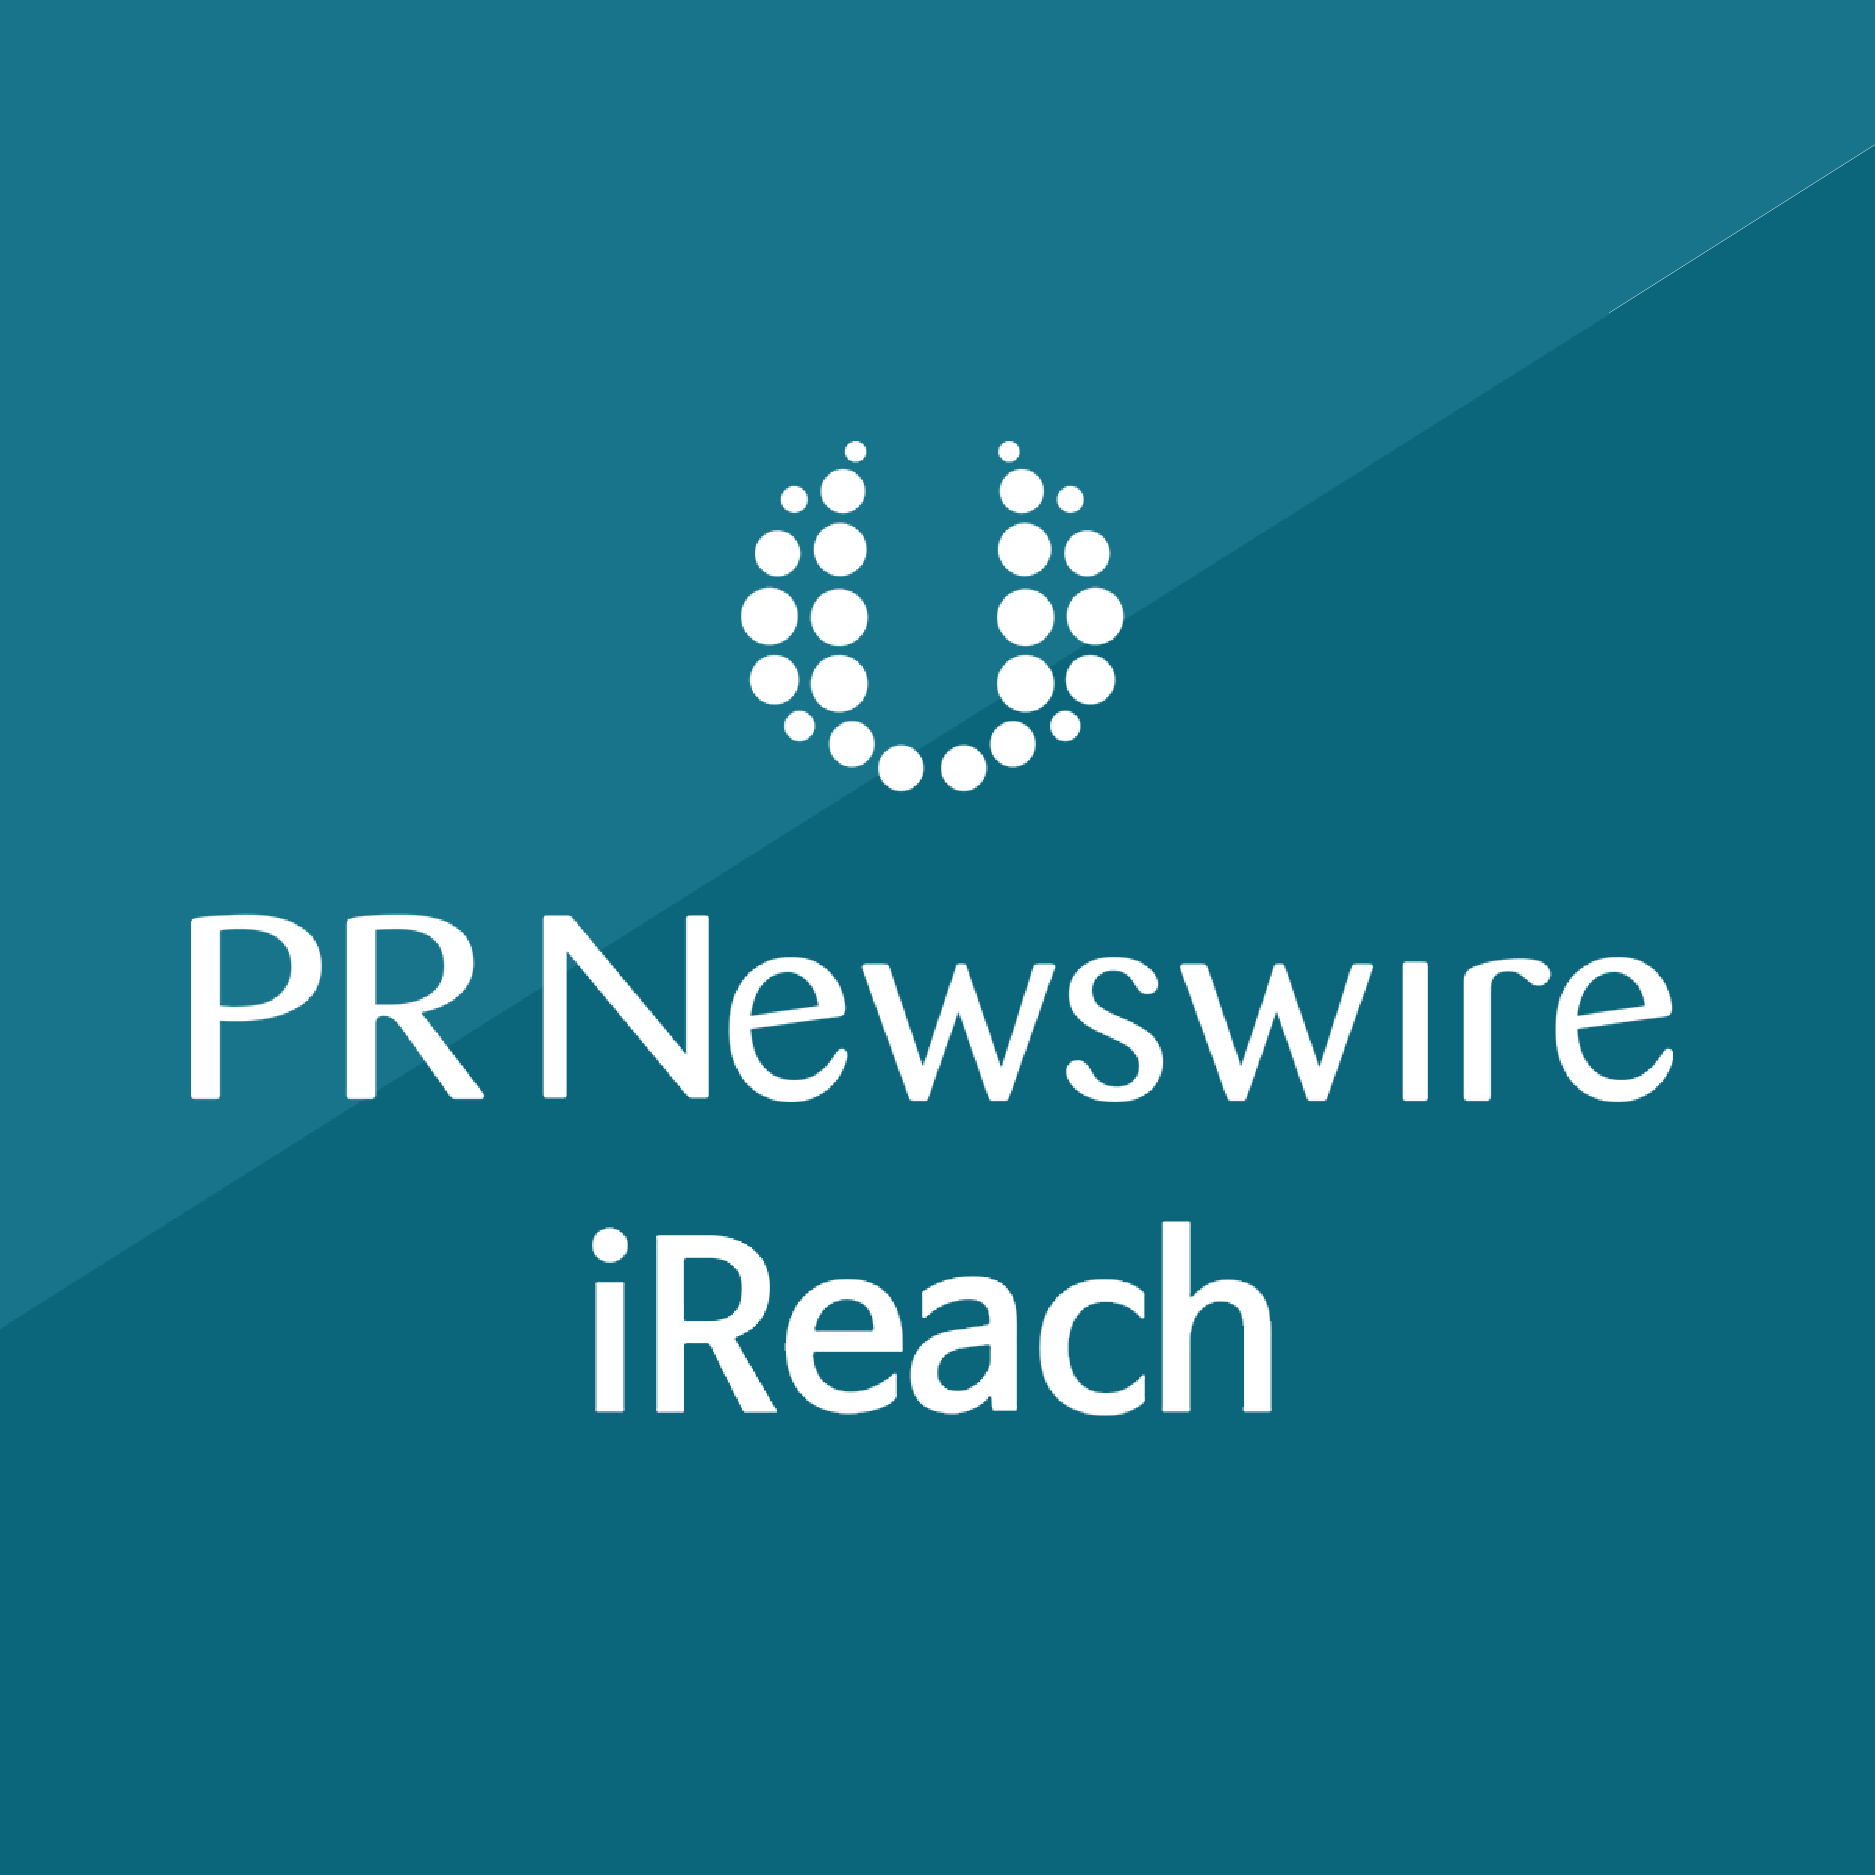 Featured on iREACH by PR Newswire